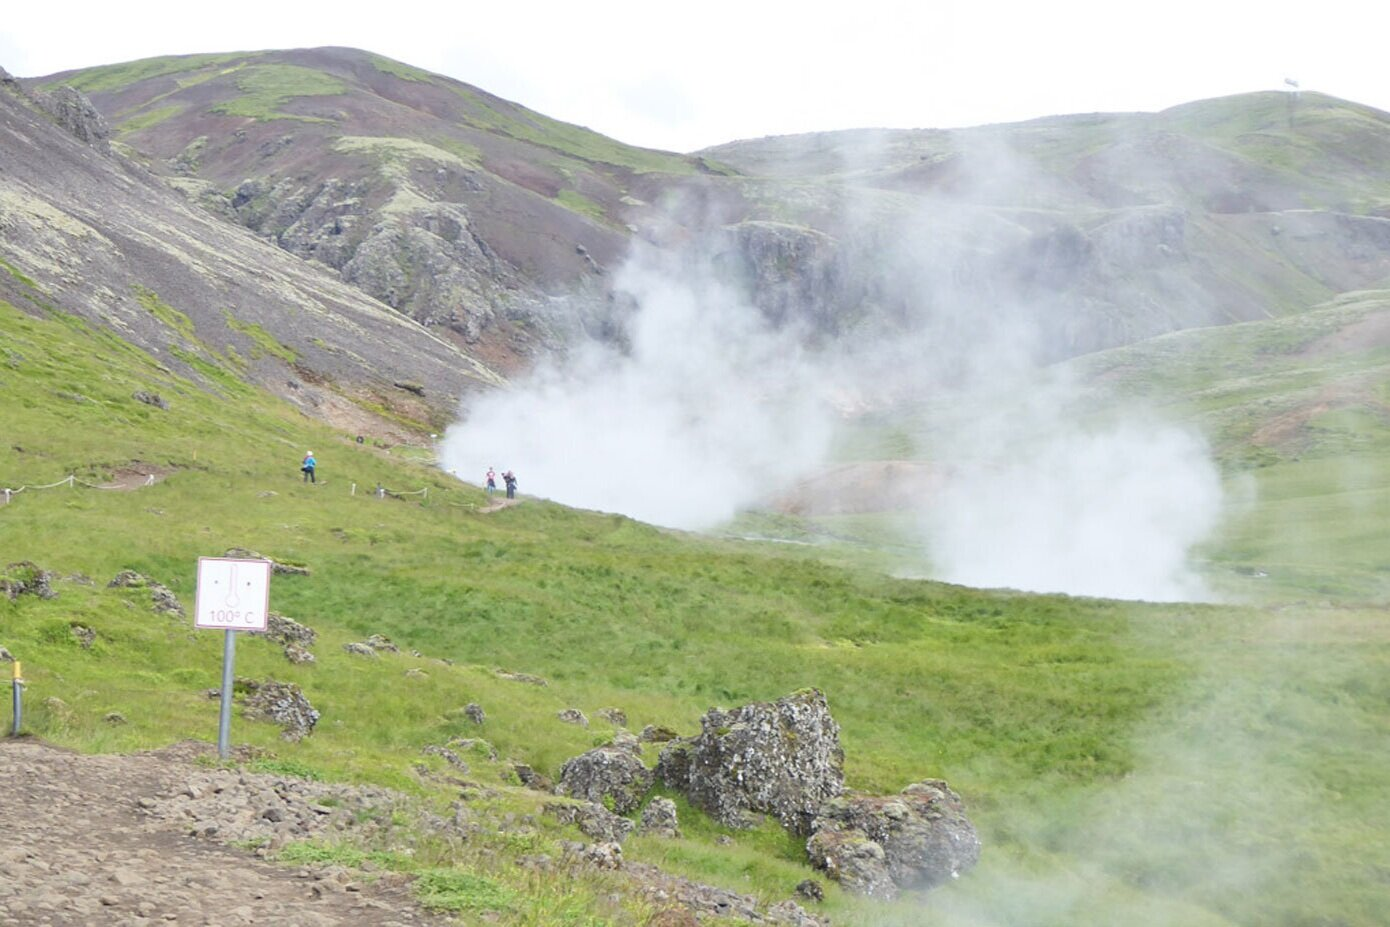 Steaming river in Iceland